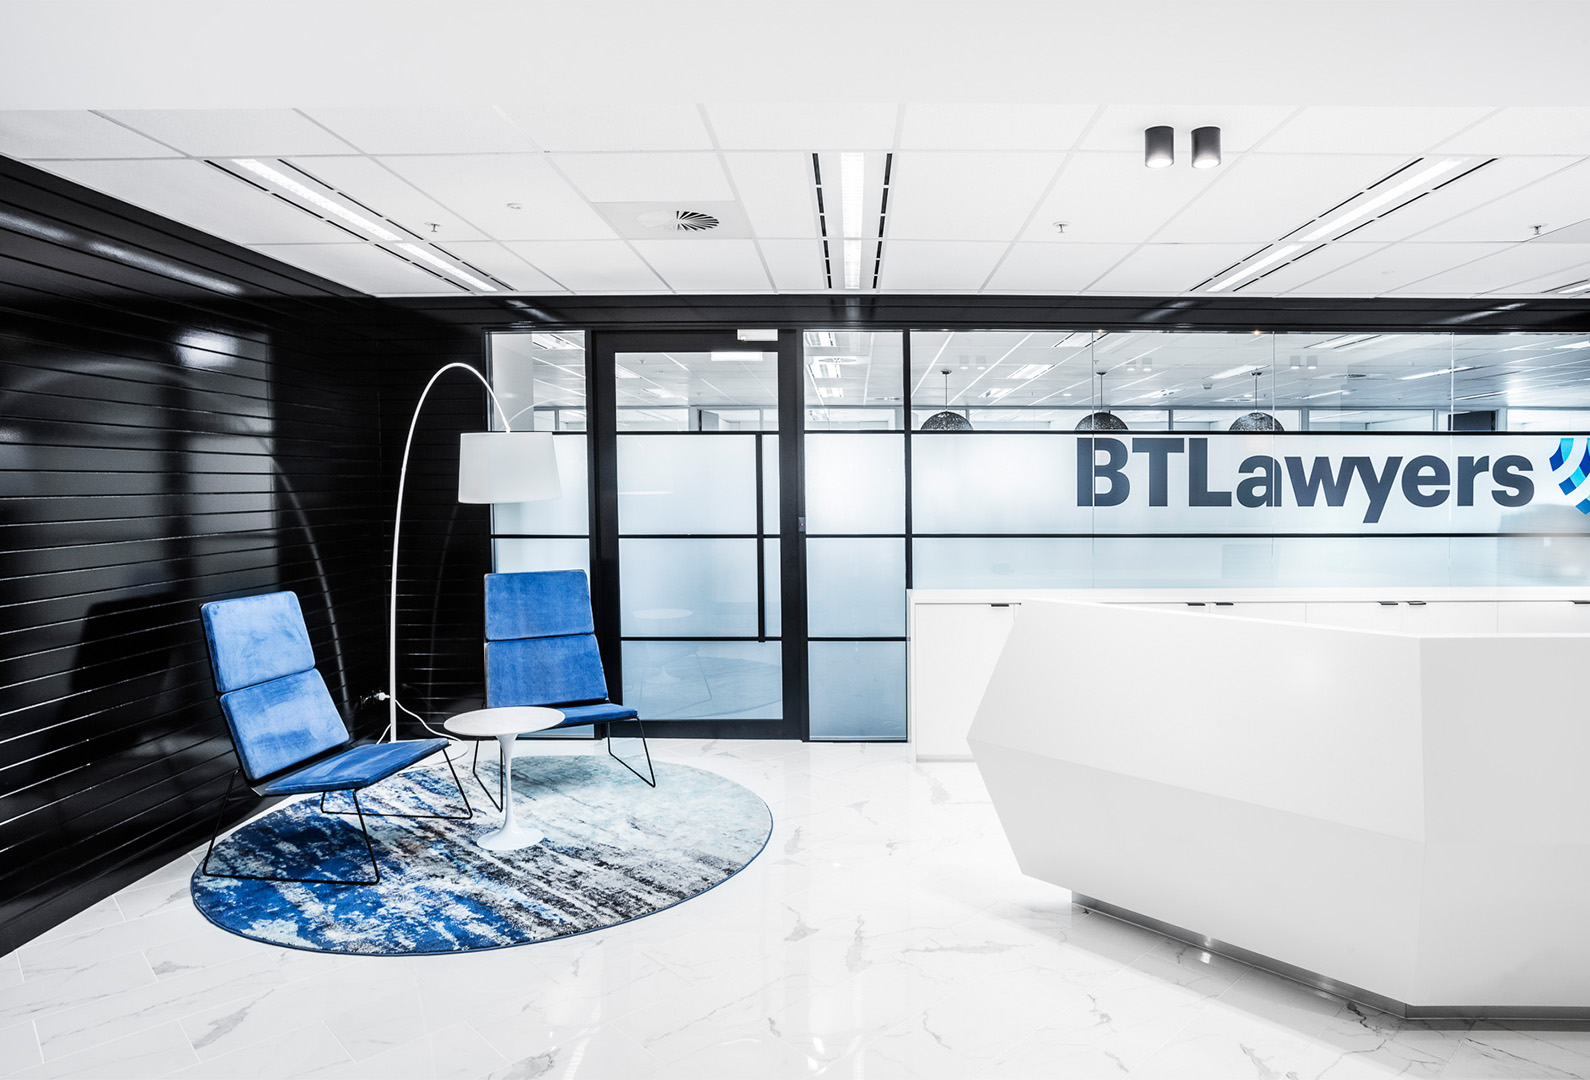 Archway - BT Lawyers - Reception 02.jpg